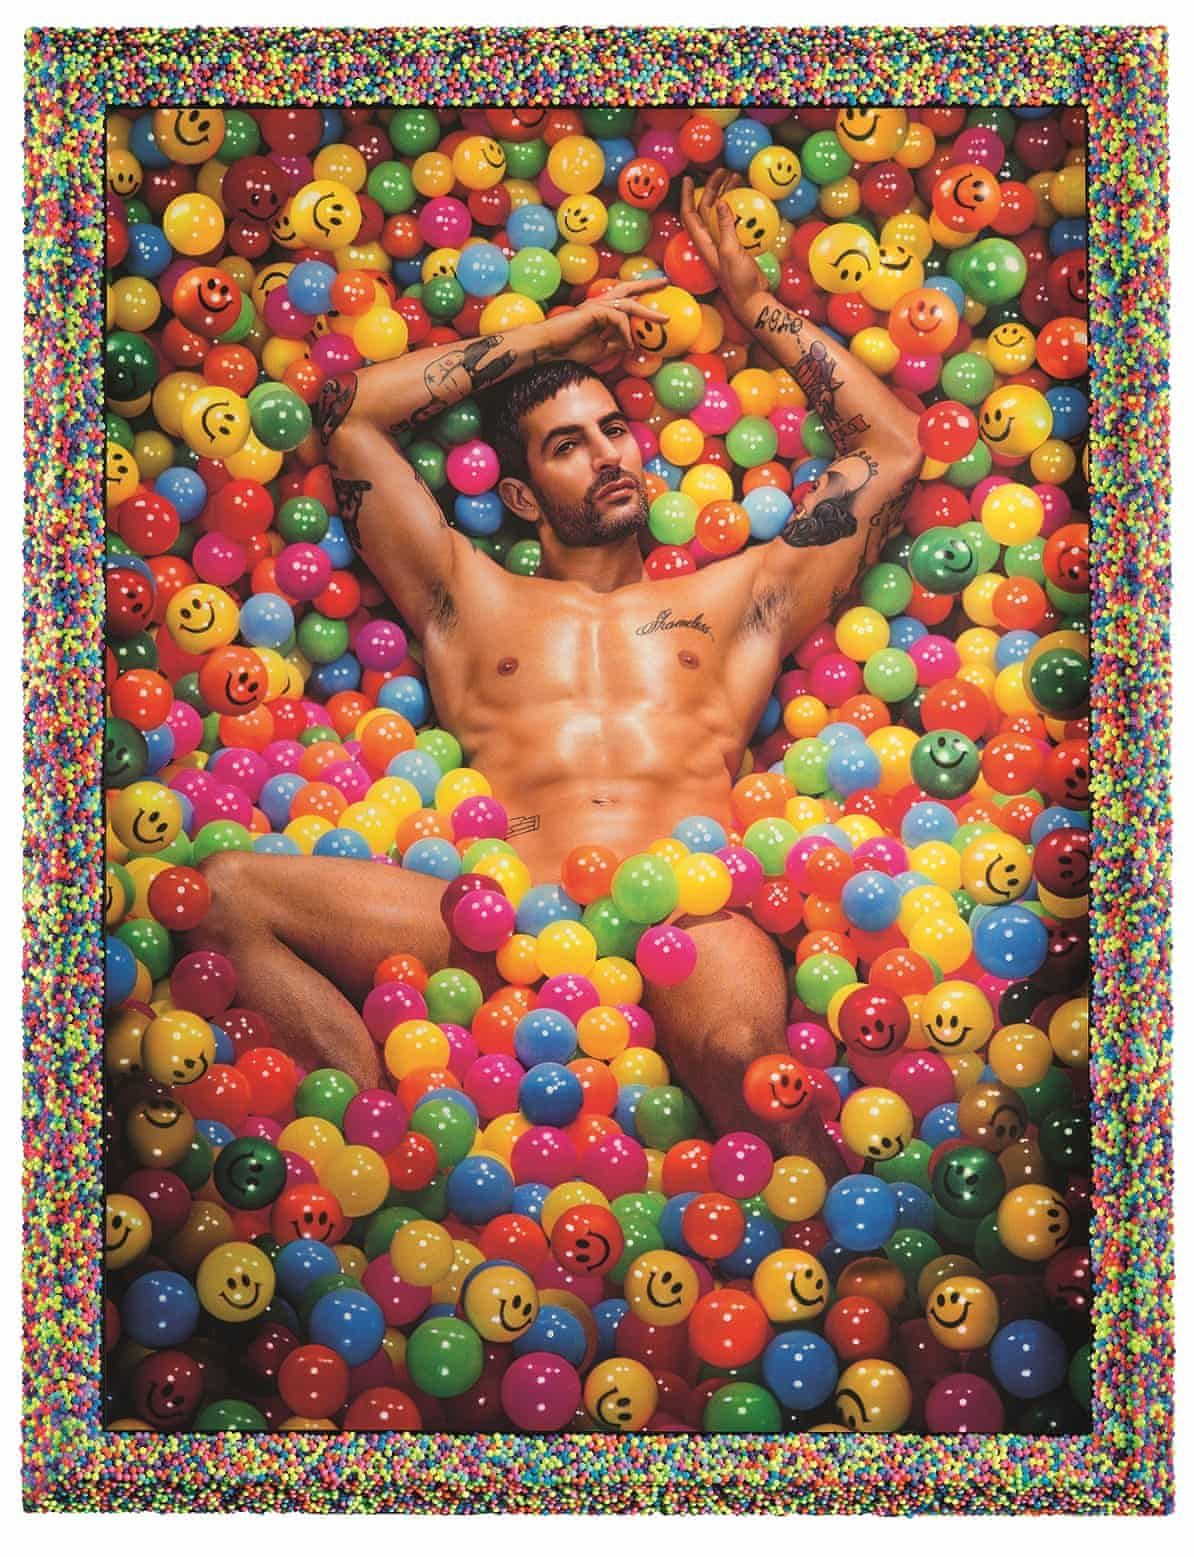 Naked man in a ball pool